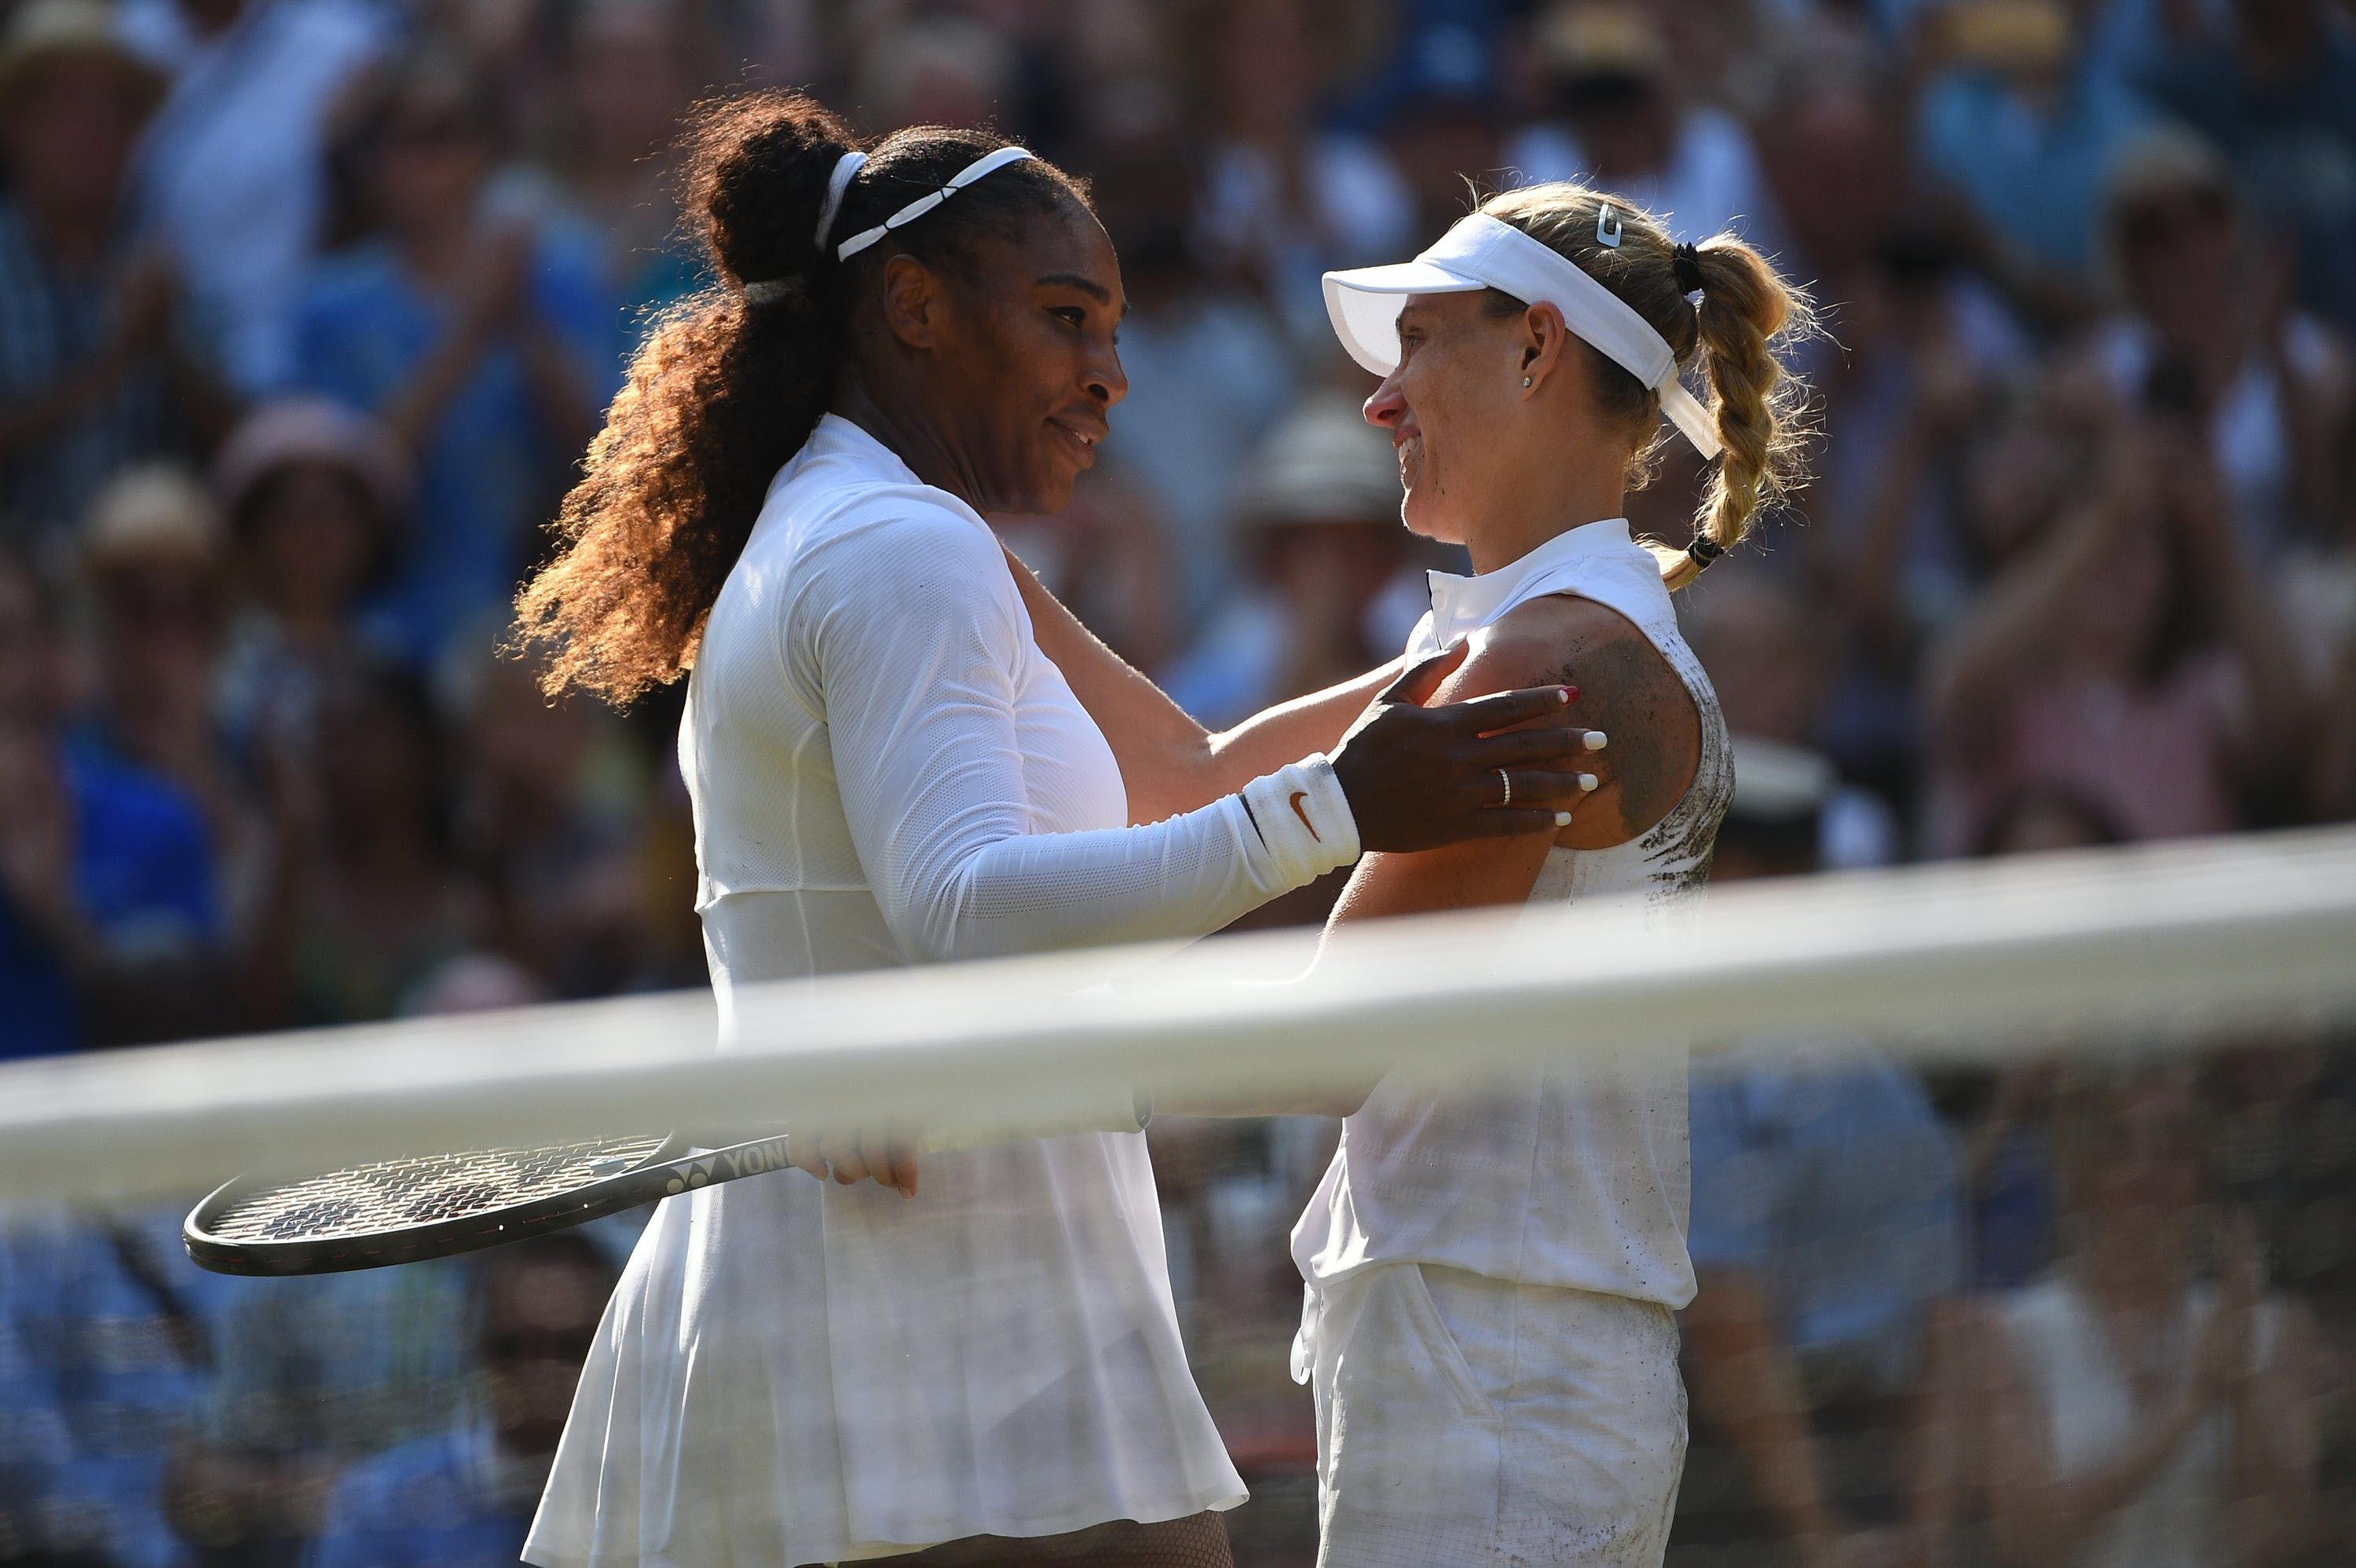 Serena Williams congratulating Angelique Kerber after the Wimbledon 2018 final